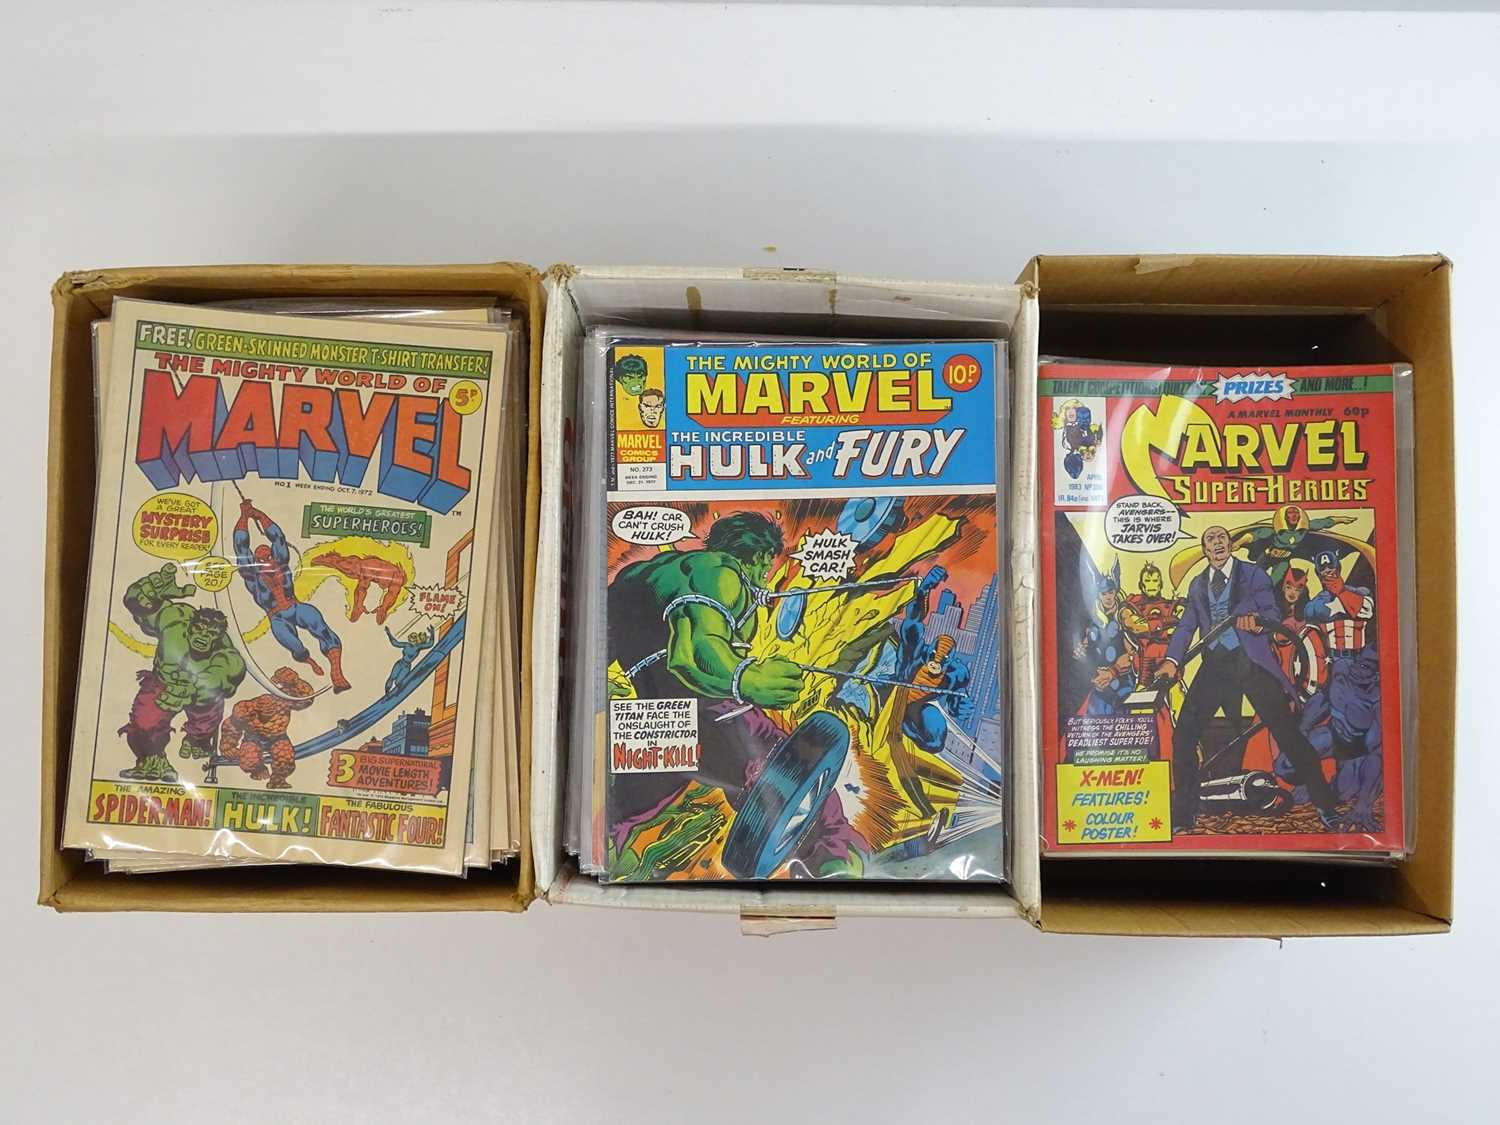 MIGHTY WORLD OF MARVEL #1 to 397 - (397 in Lot) - (1972/83 - BRITISH MARVEL) - Complete 397 issue